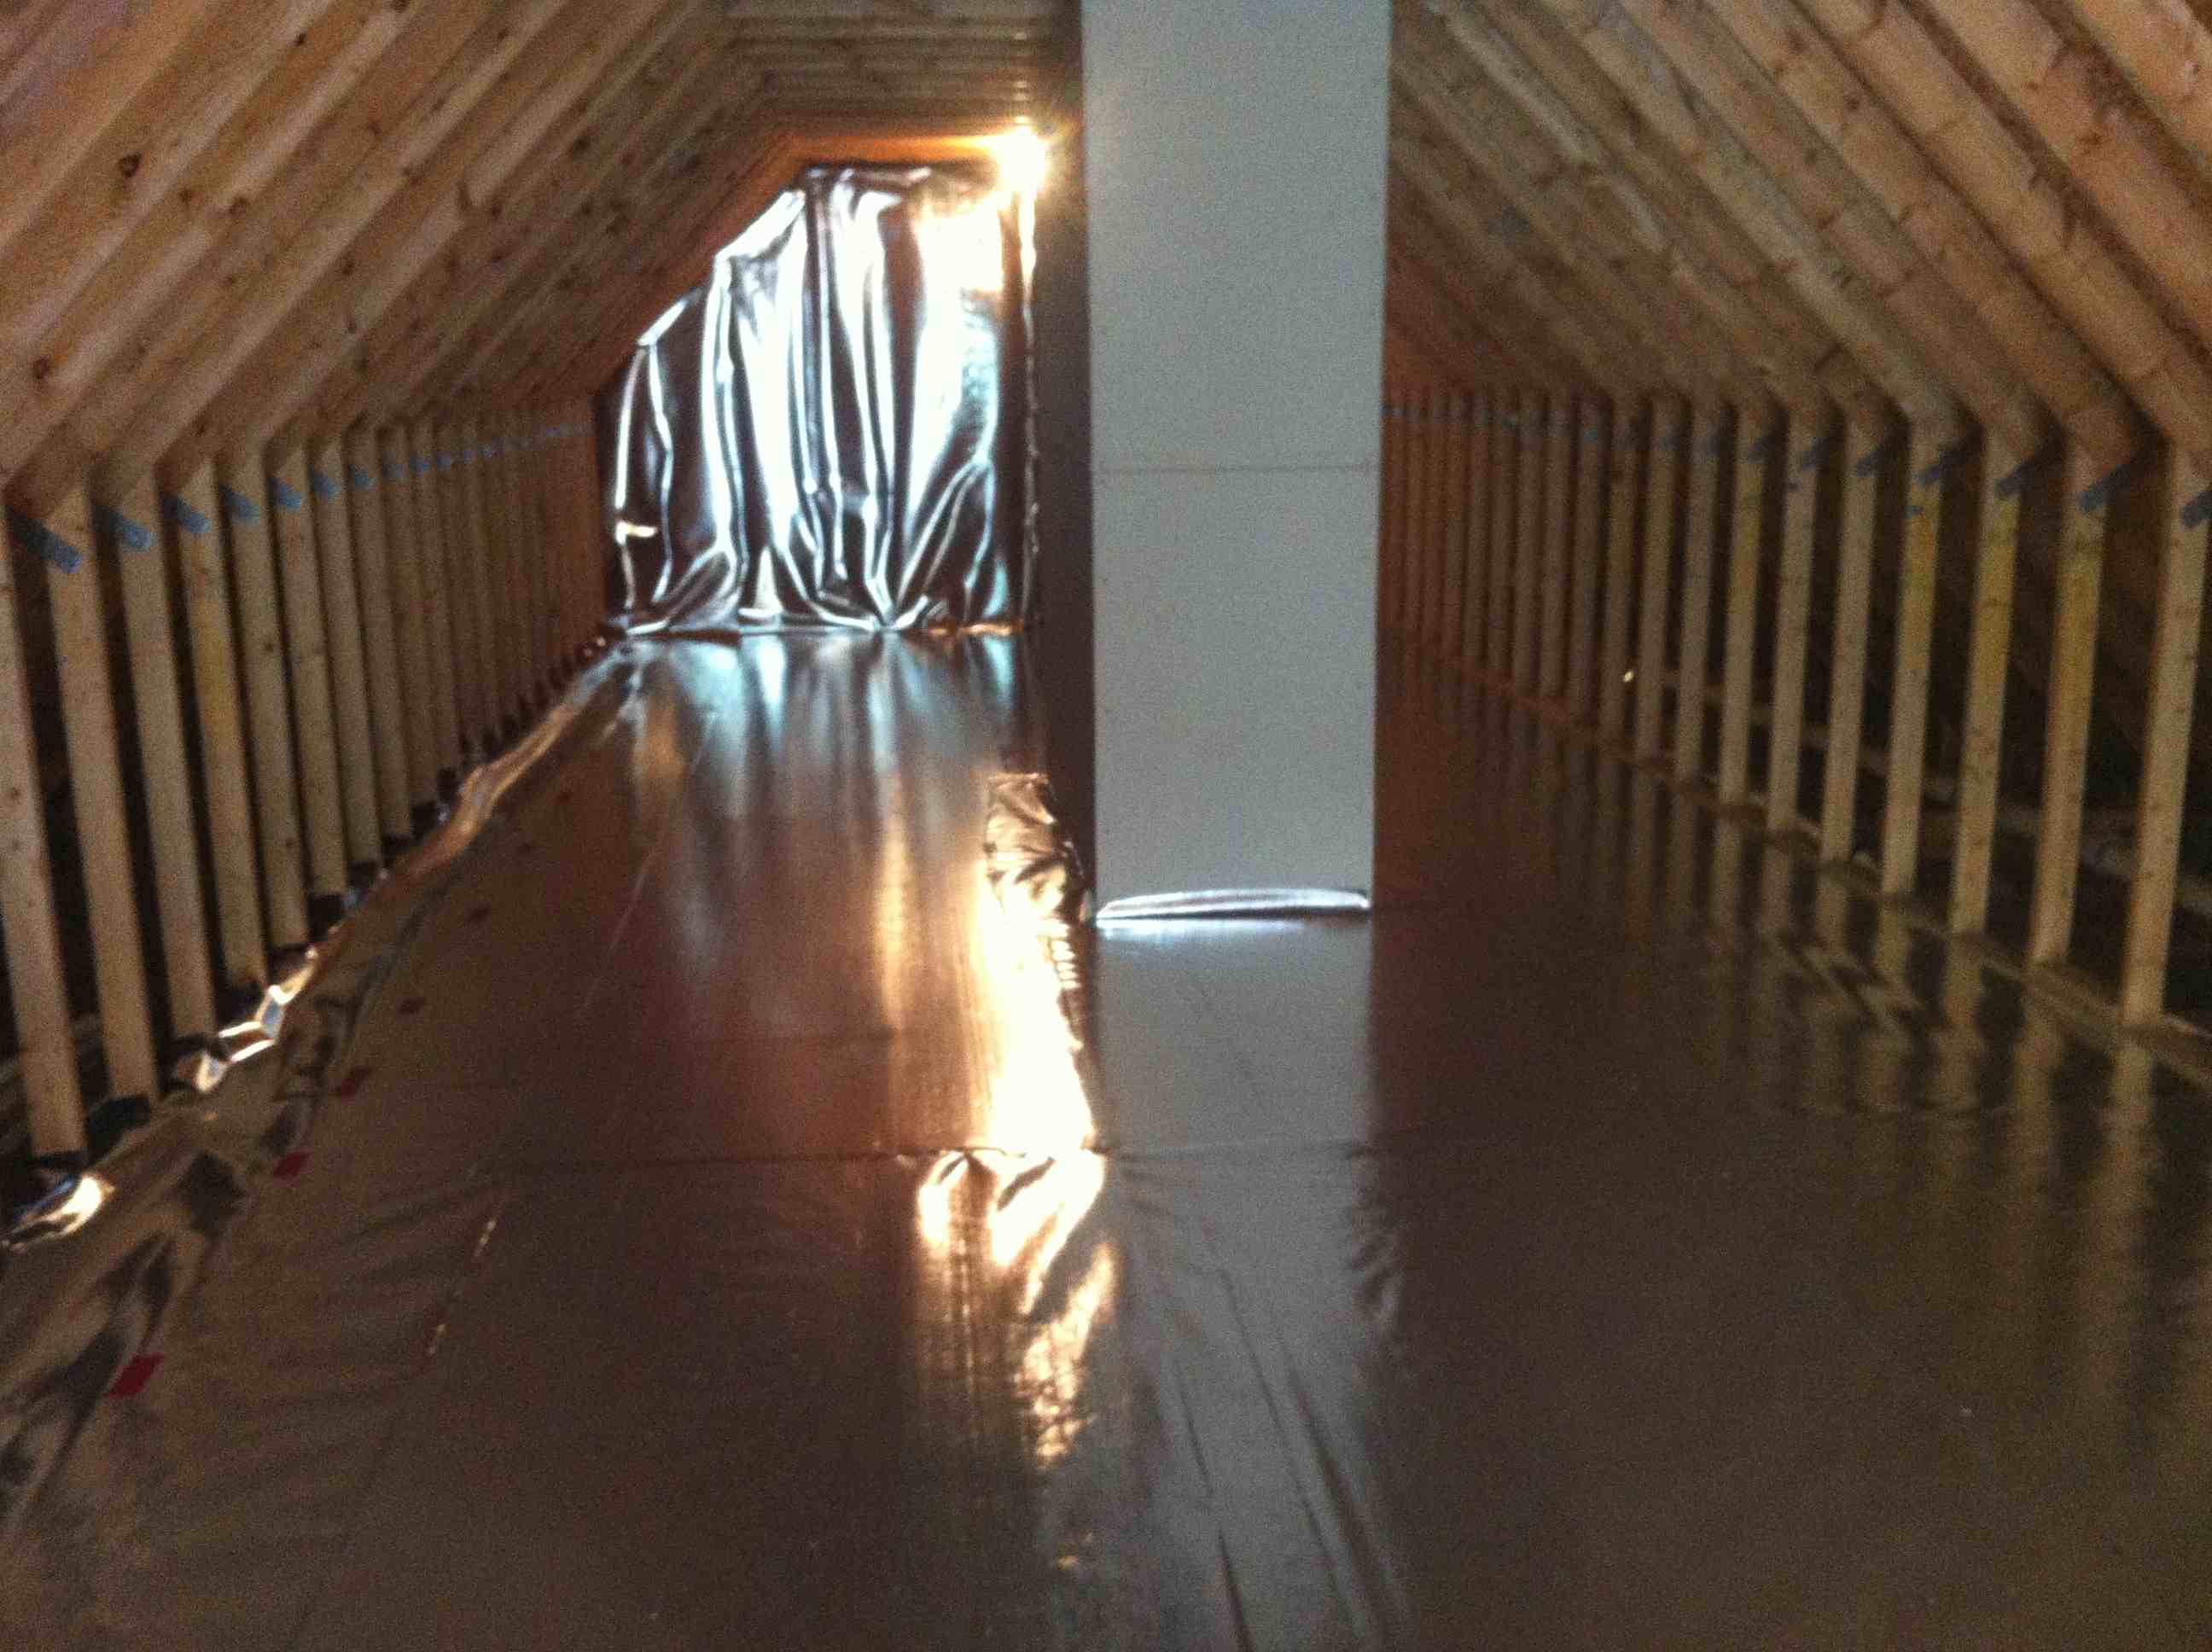 radiant barrier floor and walls